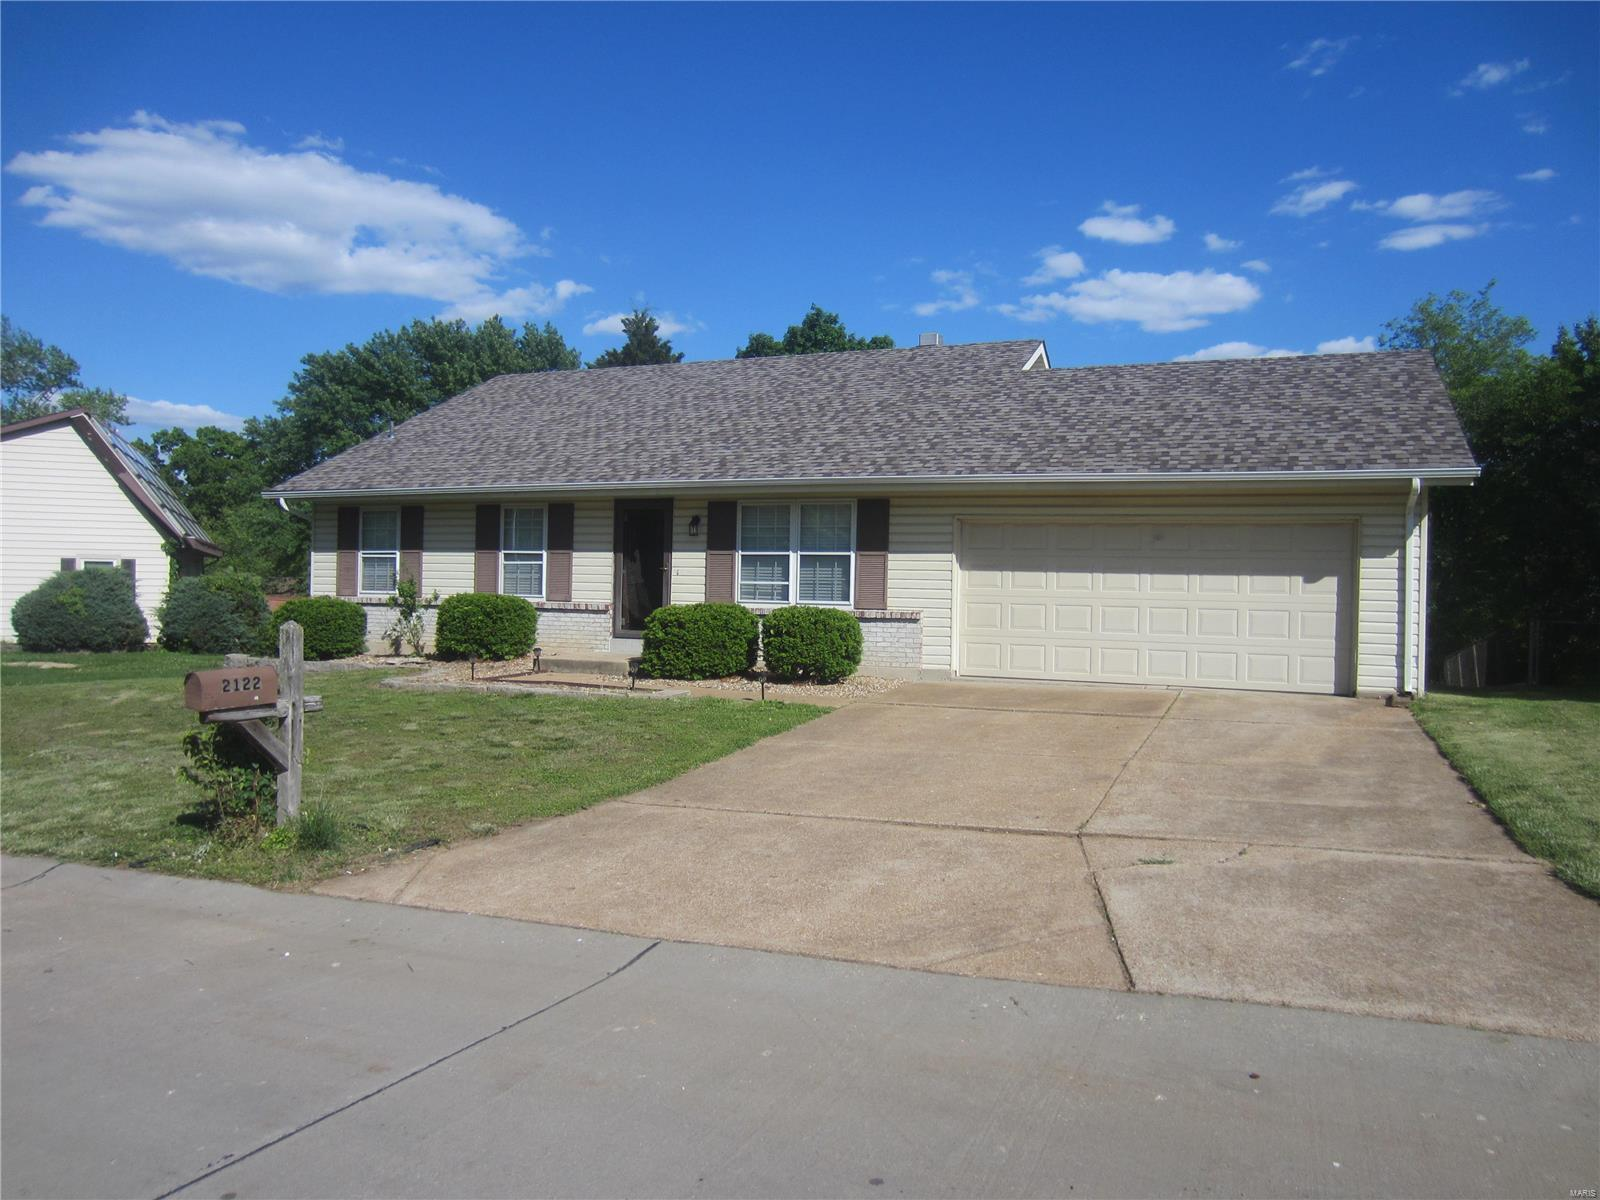 2122 Meadow Property Photo - Barnhart, MO real estate listing